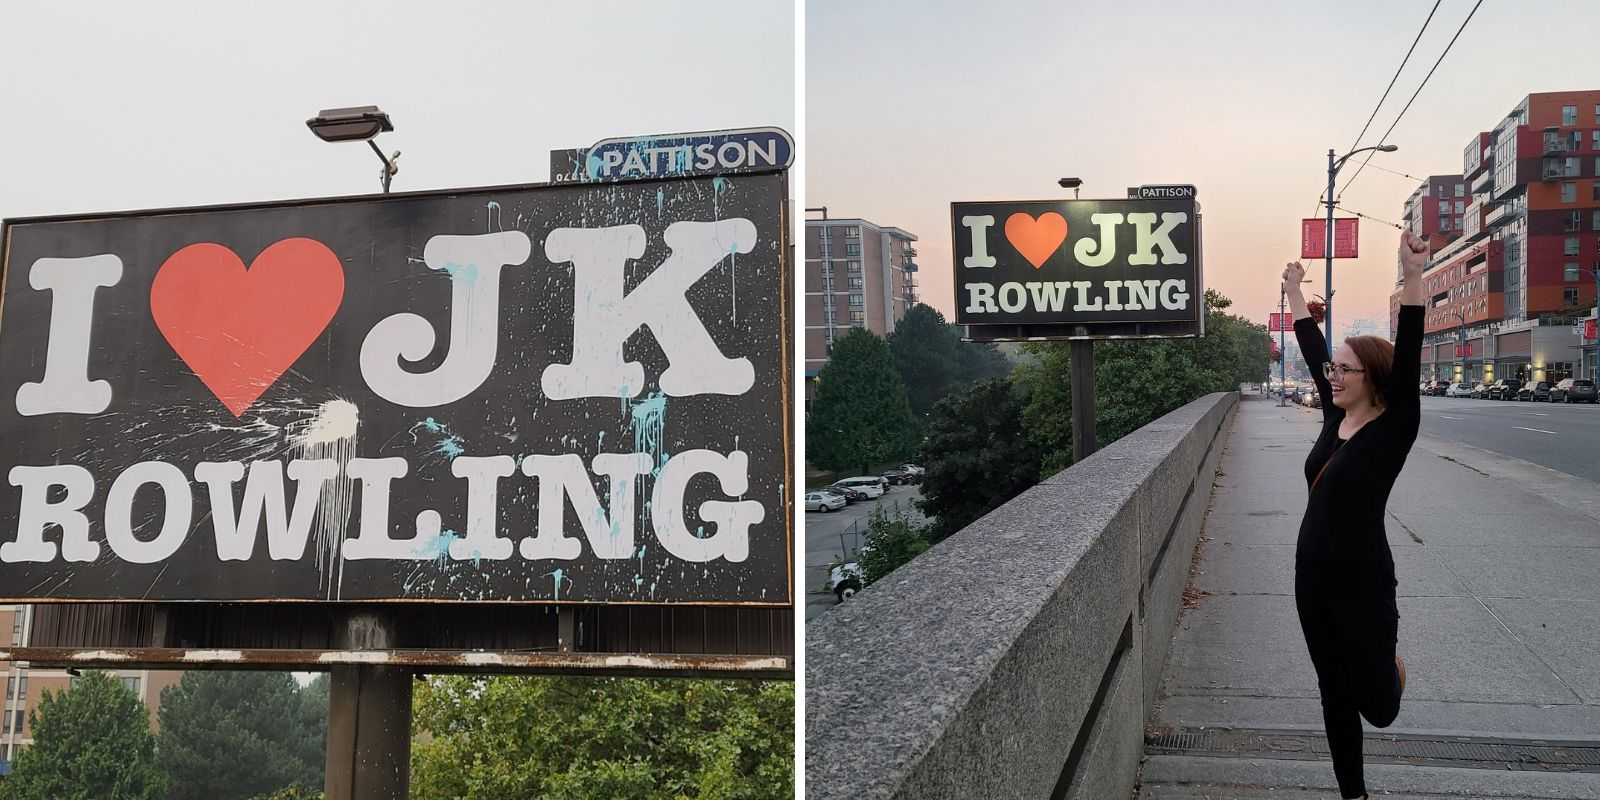 Billboard company to take down tribute to JK Rowling after one complaint of transphobia